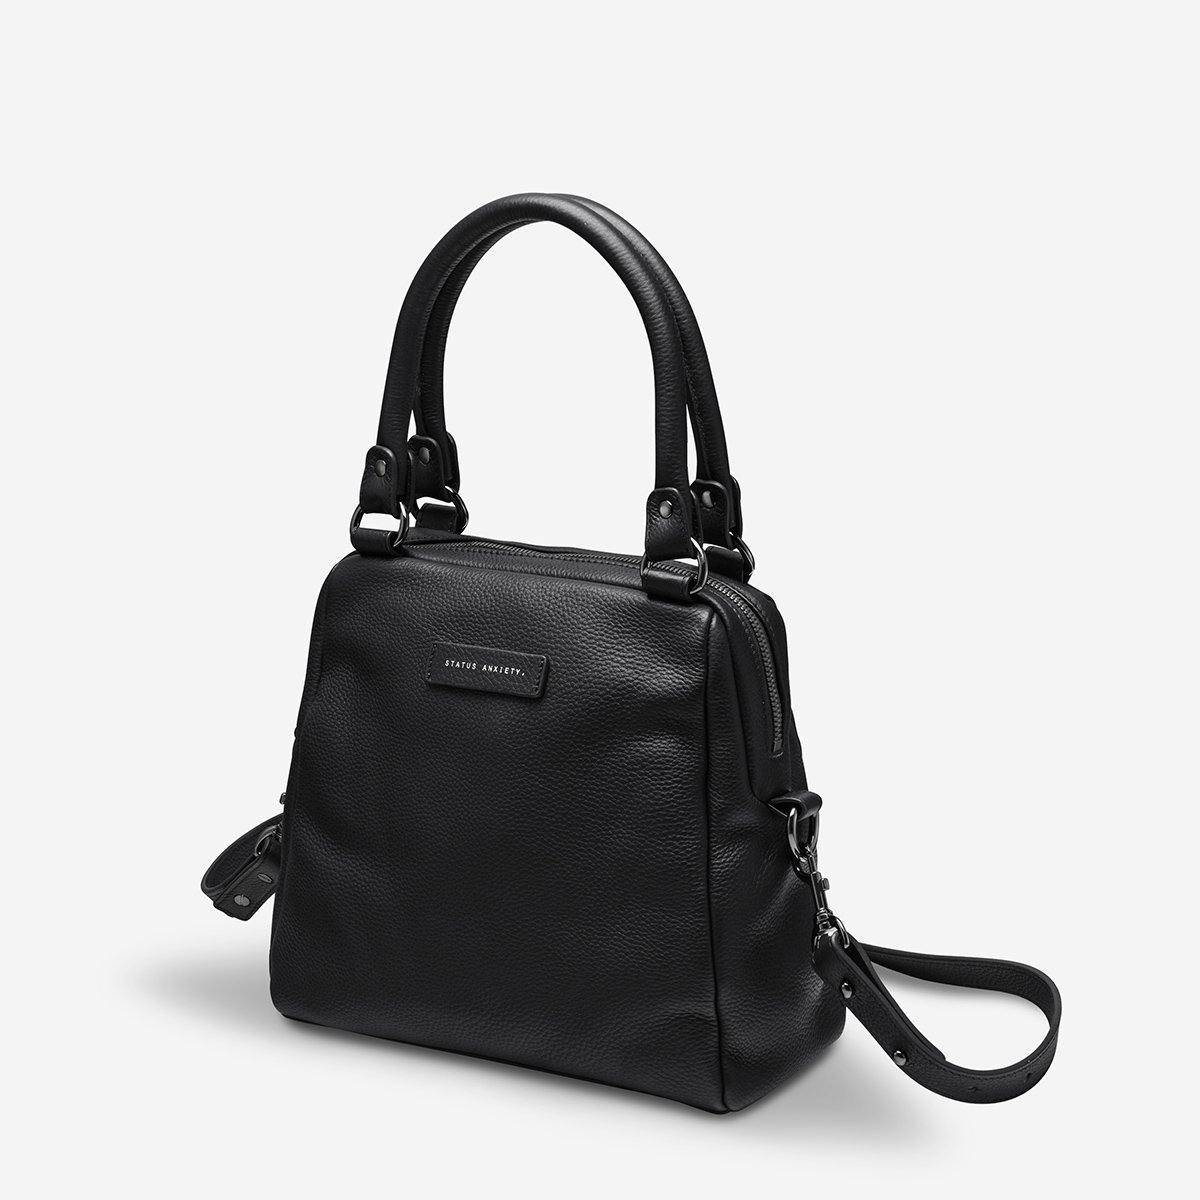 Status Anxiety Last Mountains Bag Black